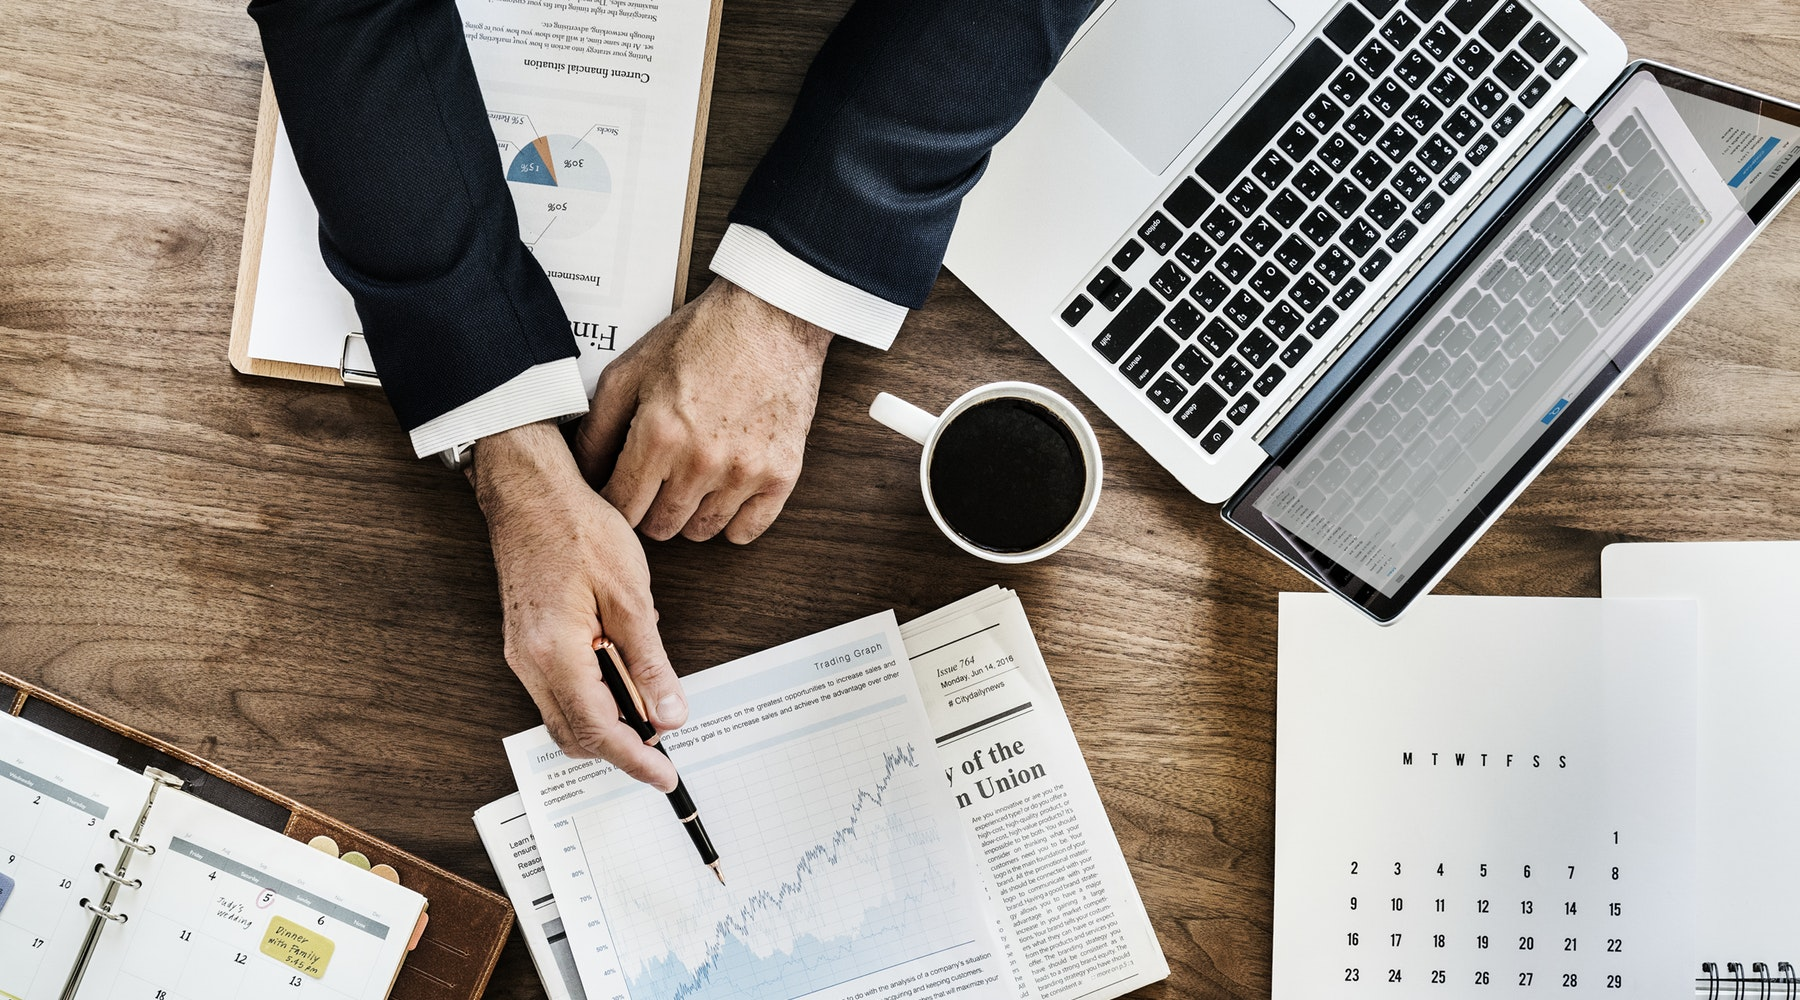 Introduction to Financial Modeling [Free Course]